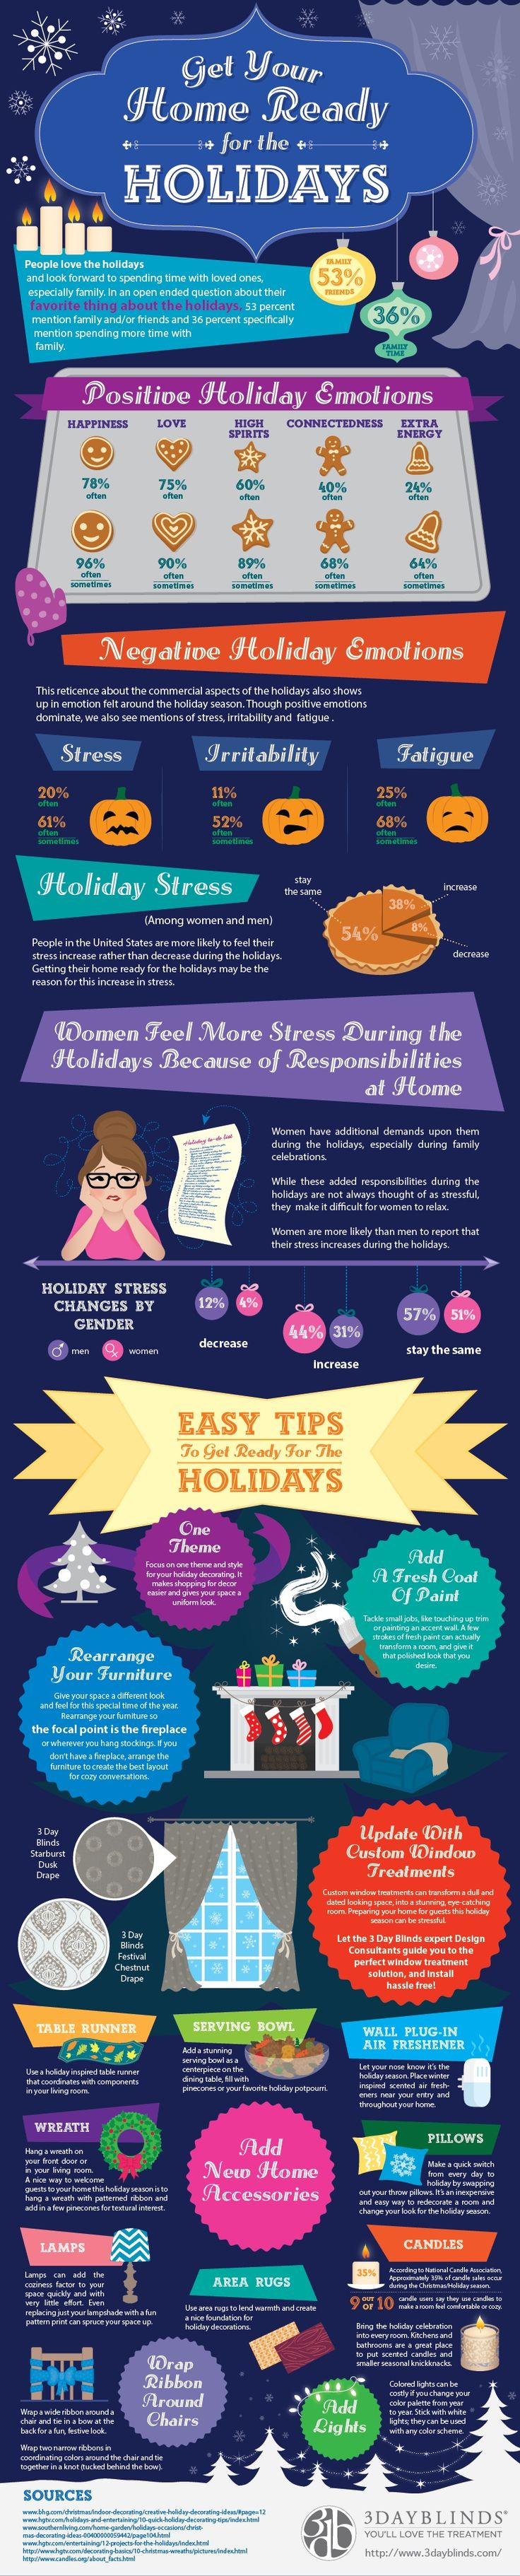 Tips to get your home holiday ready!   www.3dayblinds.com